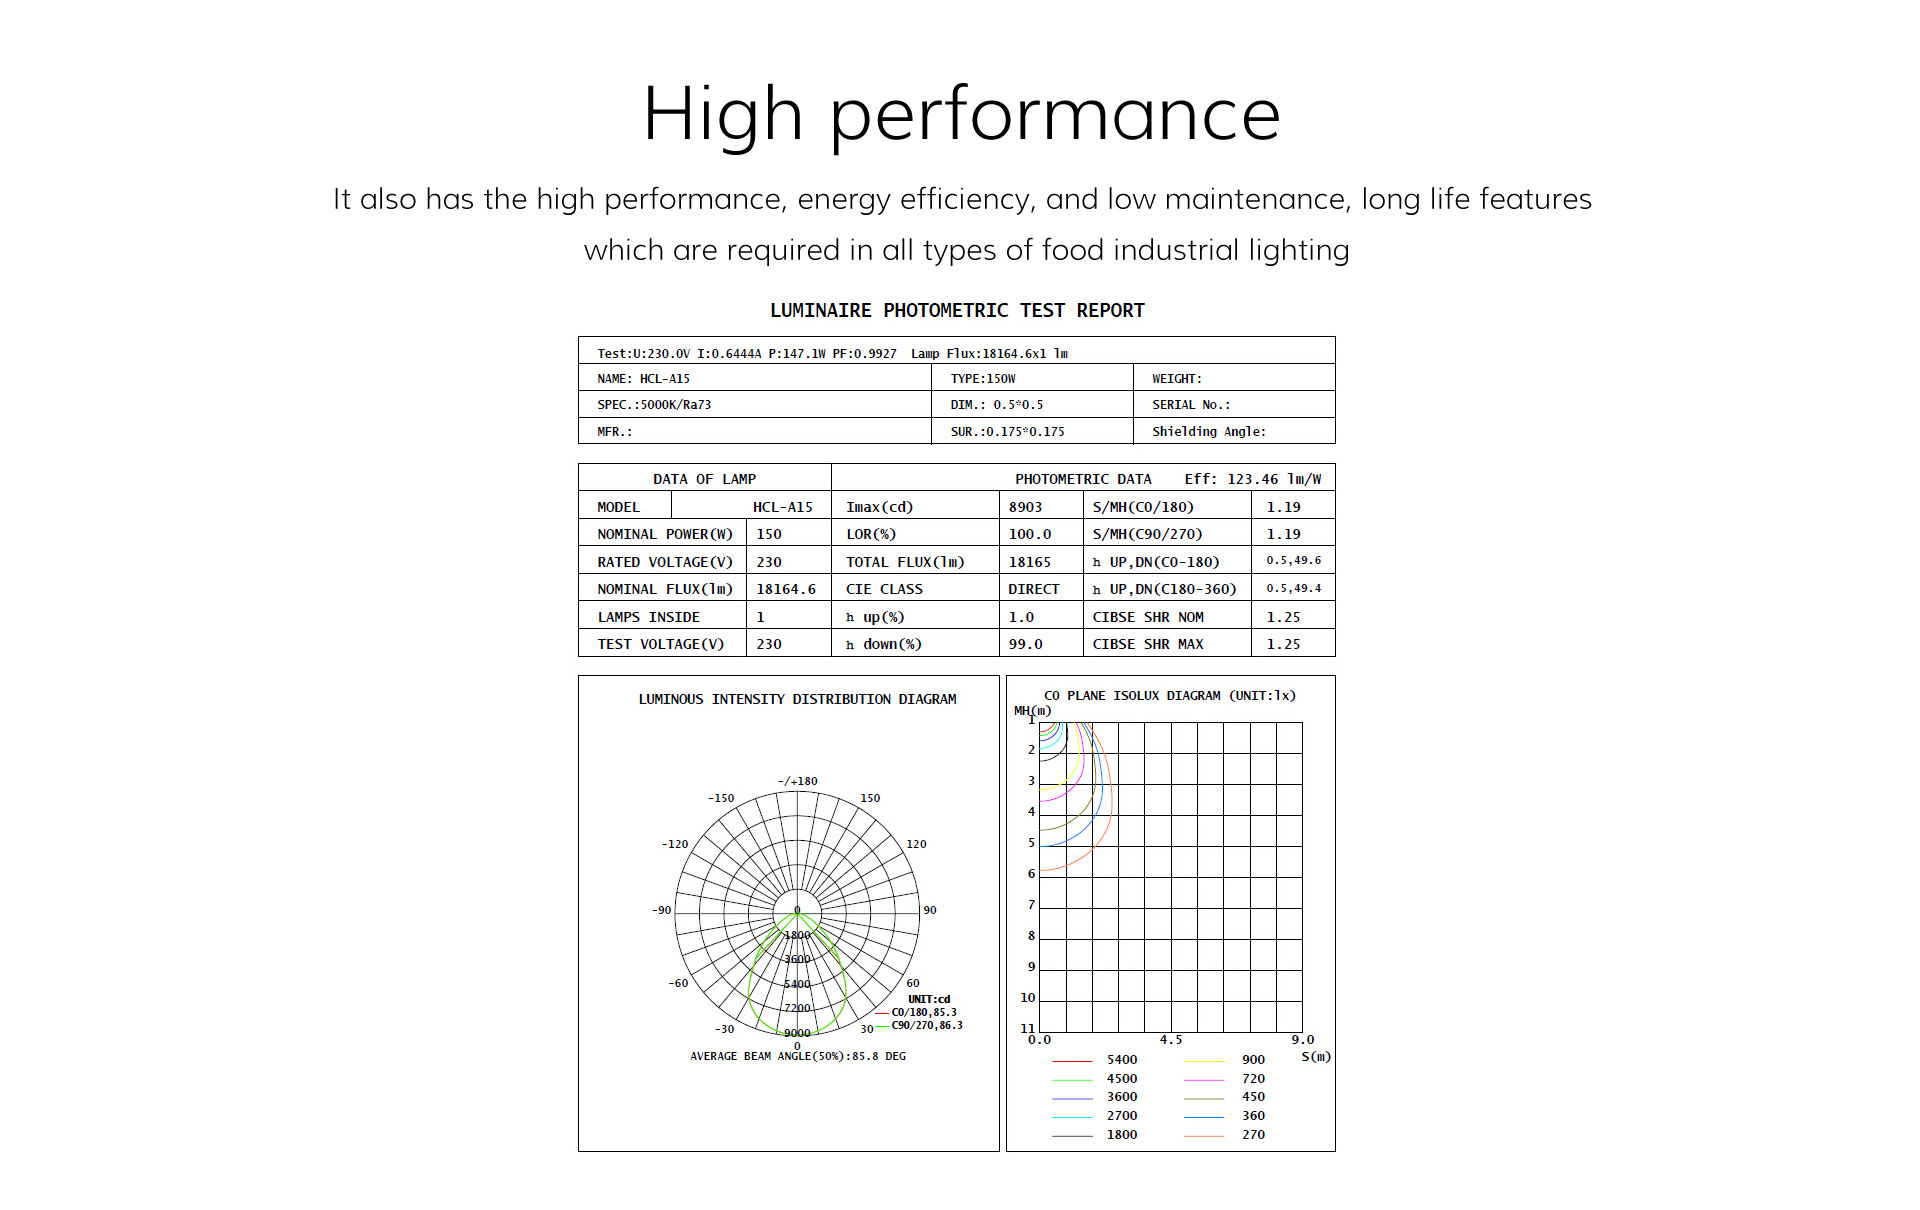 HiClean High performance